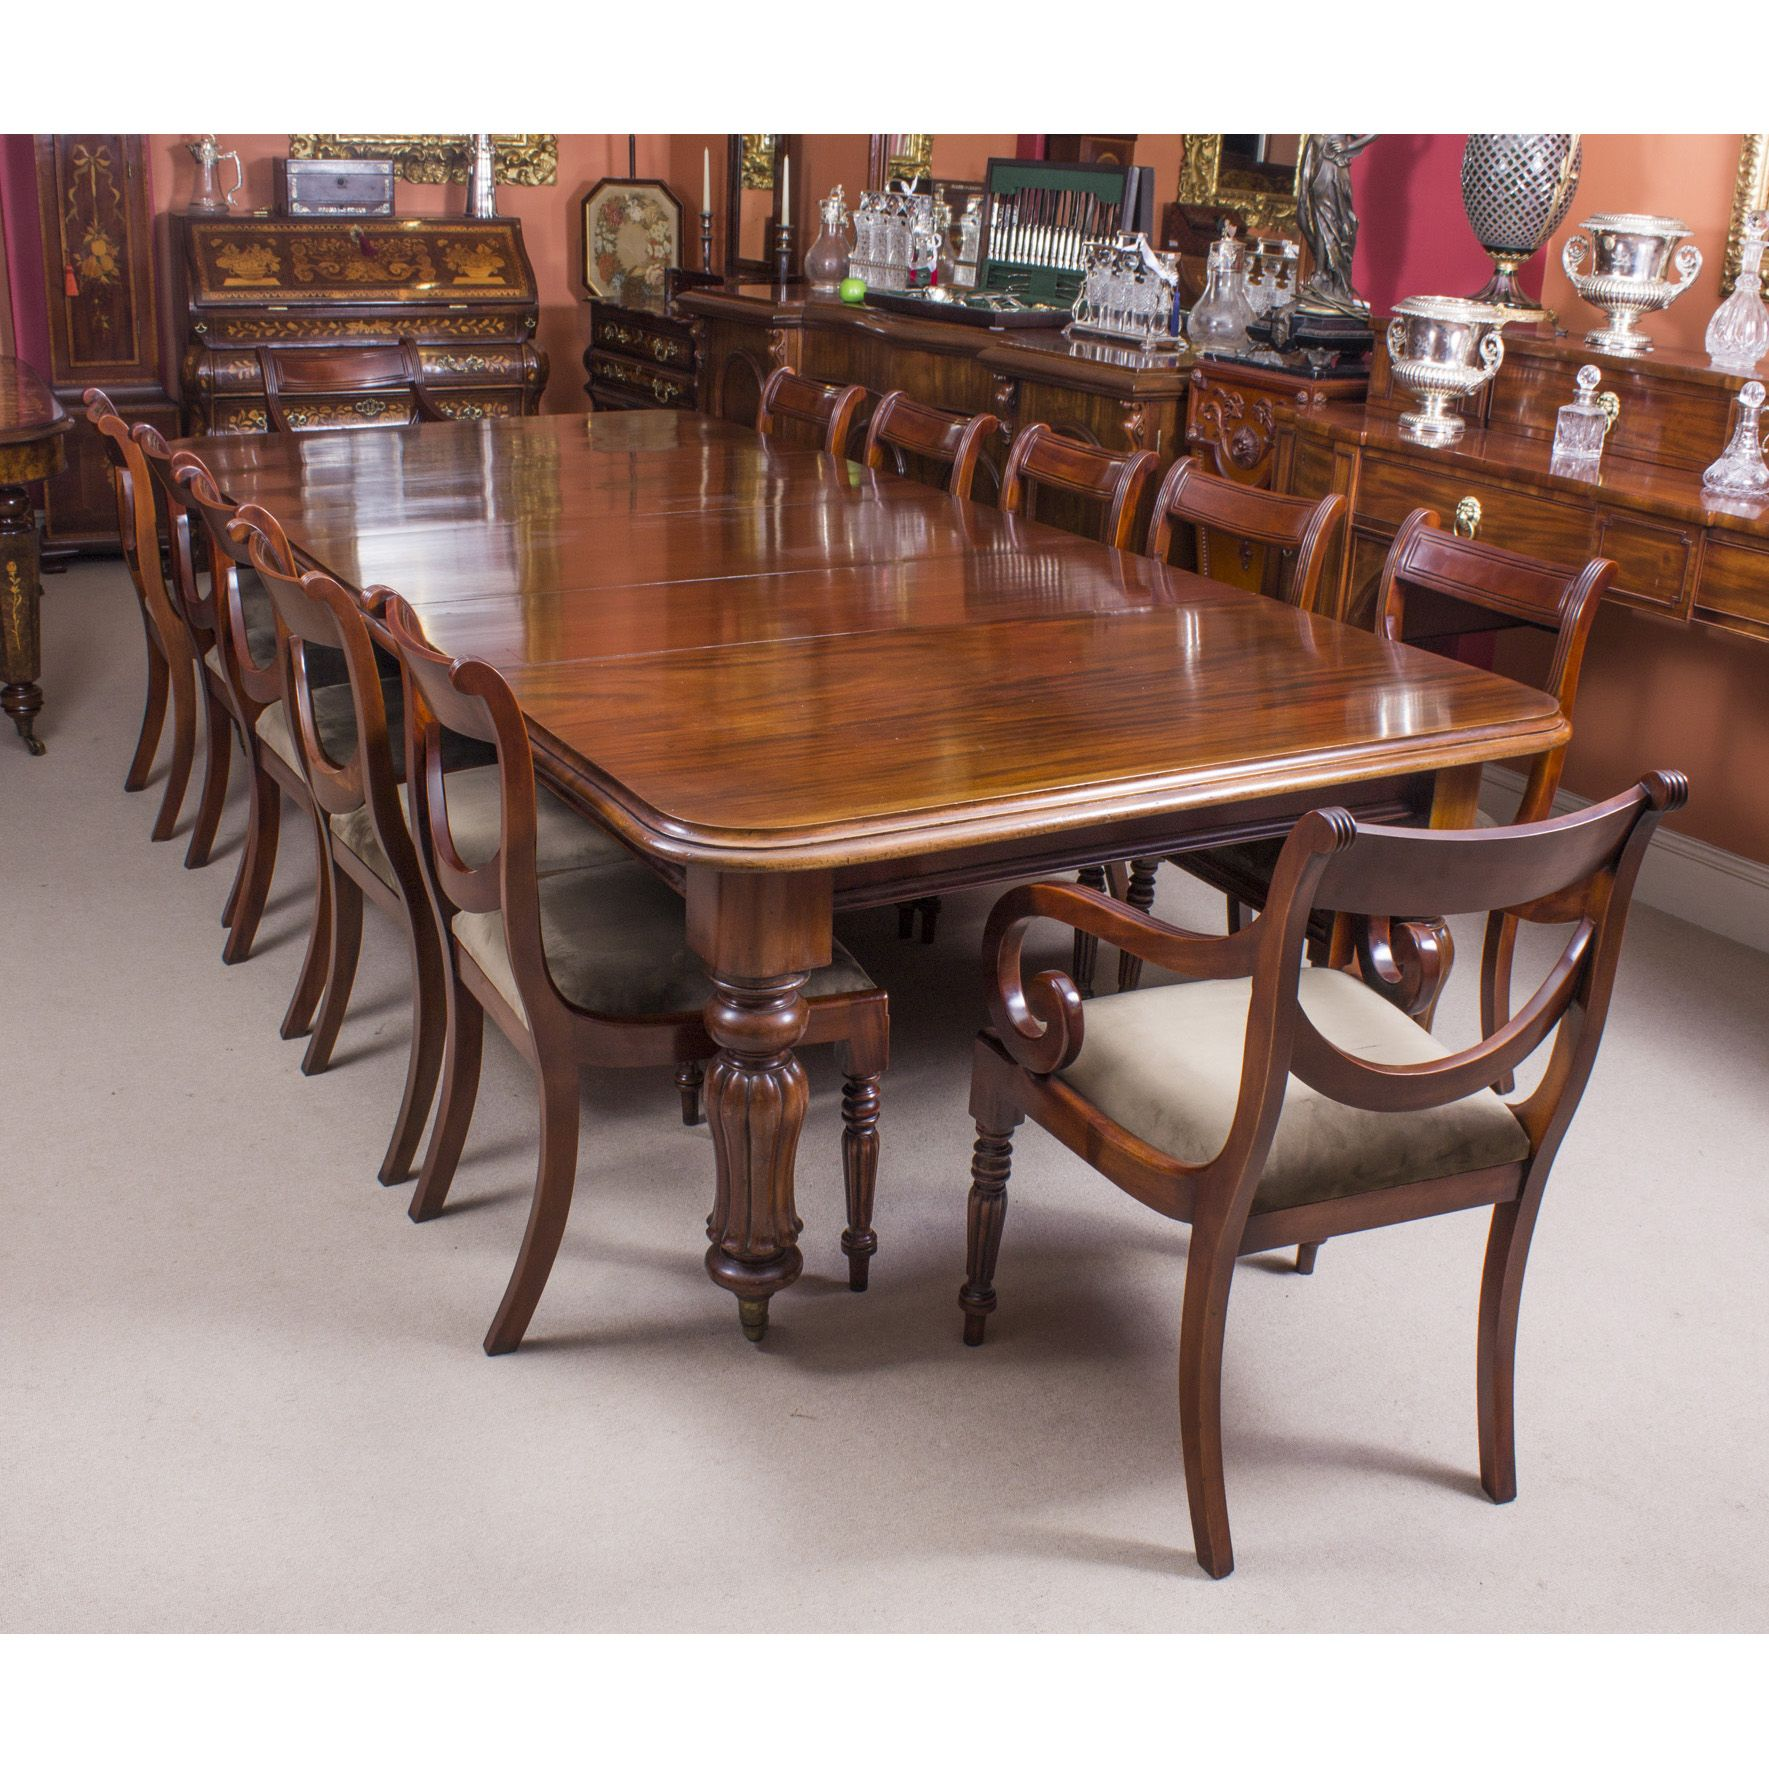 Antique William Iv Mahogany Dining Table 12 Swag Back Dining